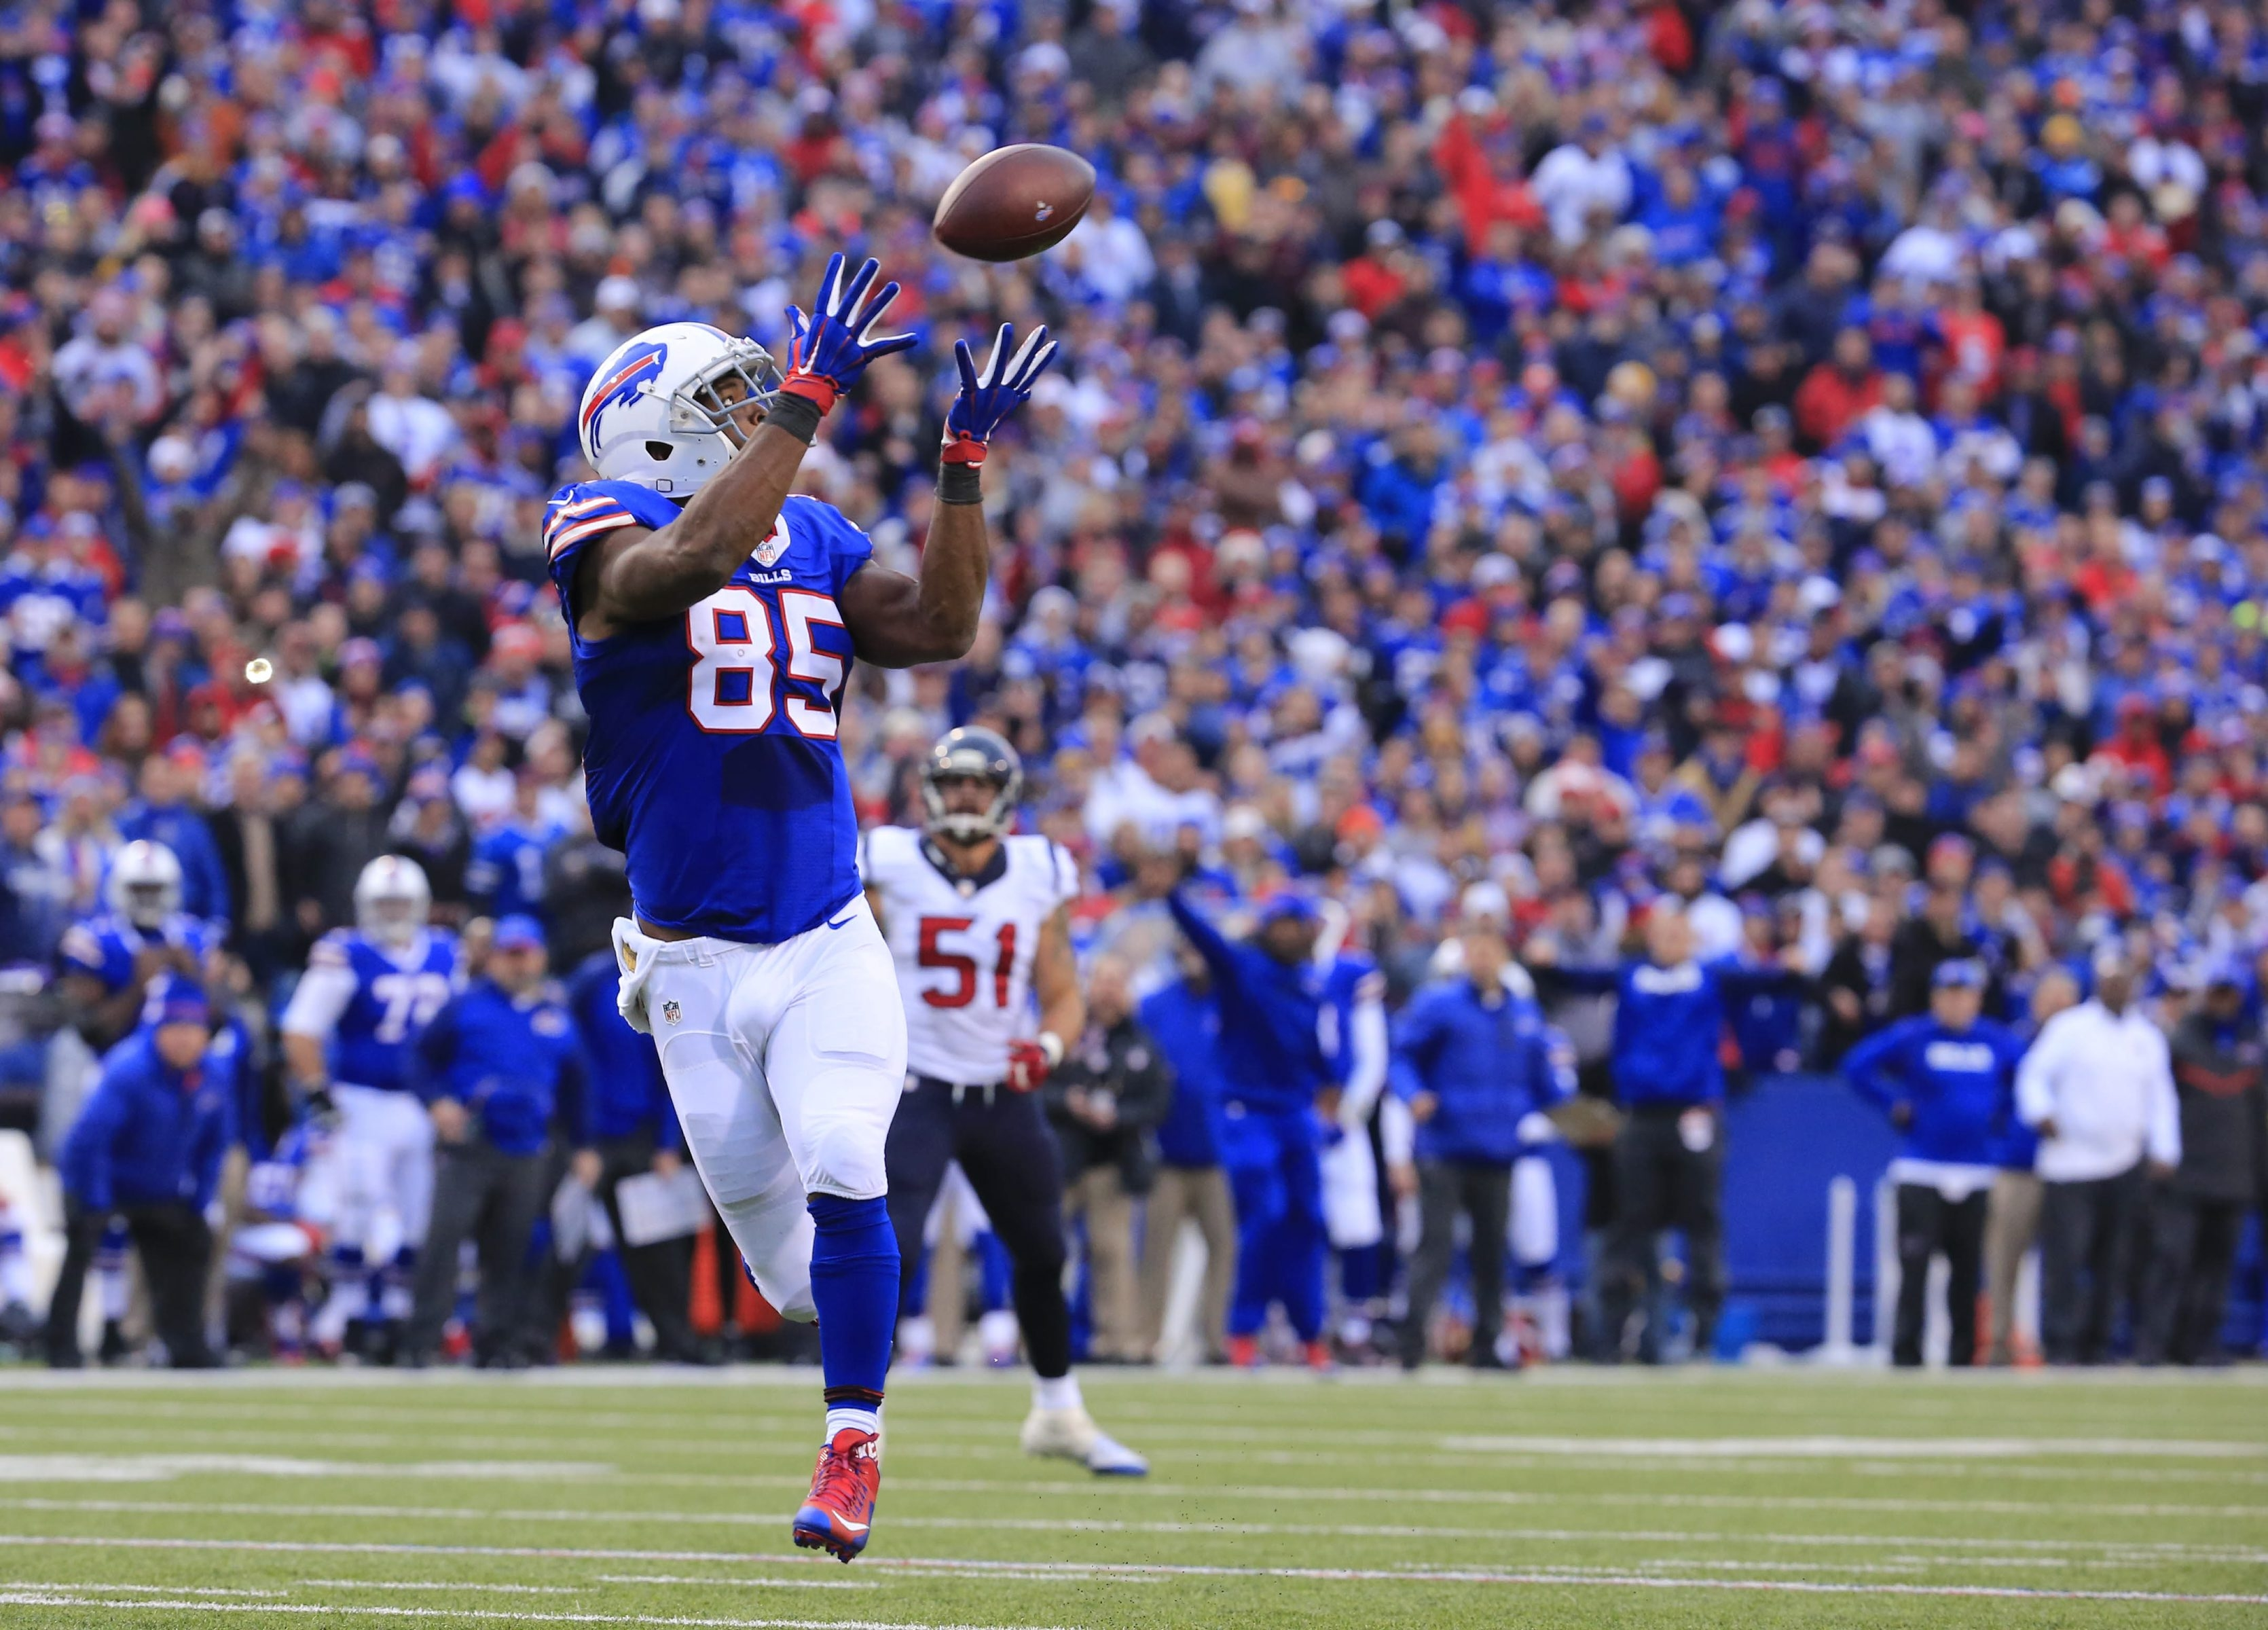 Coverage confusion on the Houston defense leaves Bills tight end Charles Clay wide open for a 40-yard touchdown reception with under 2 minutes to play in the game.